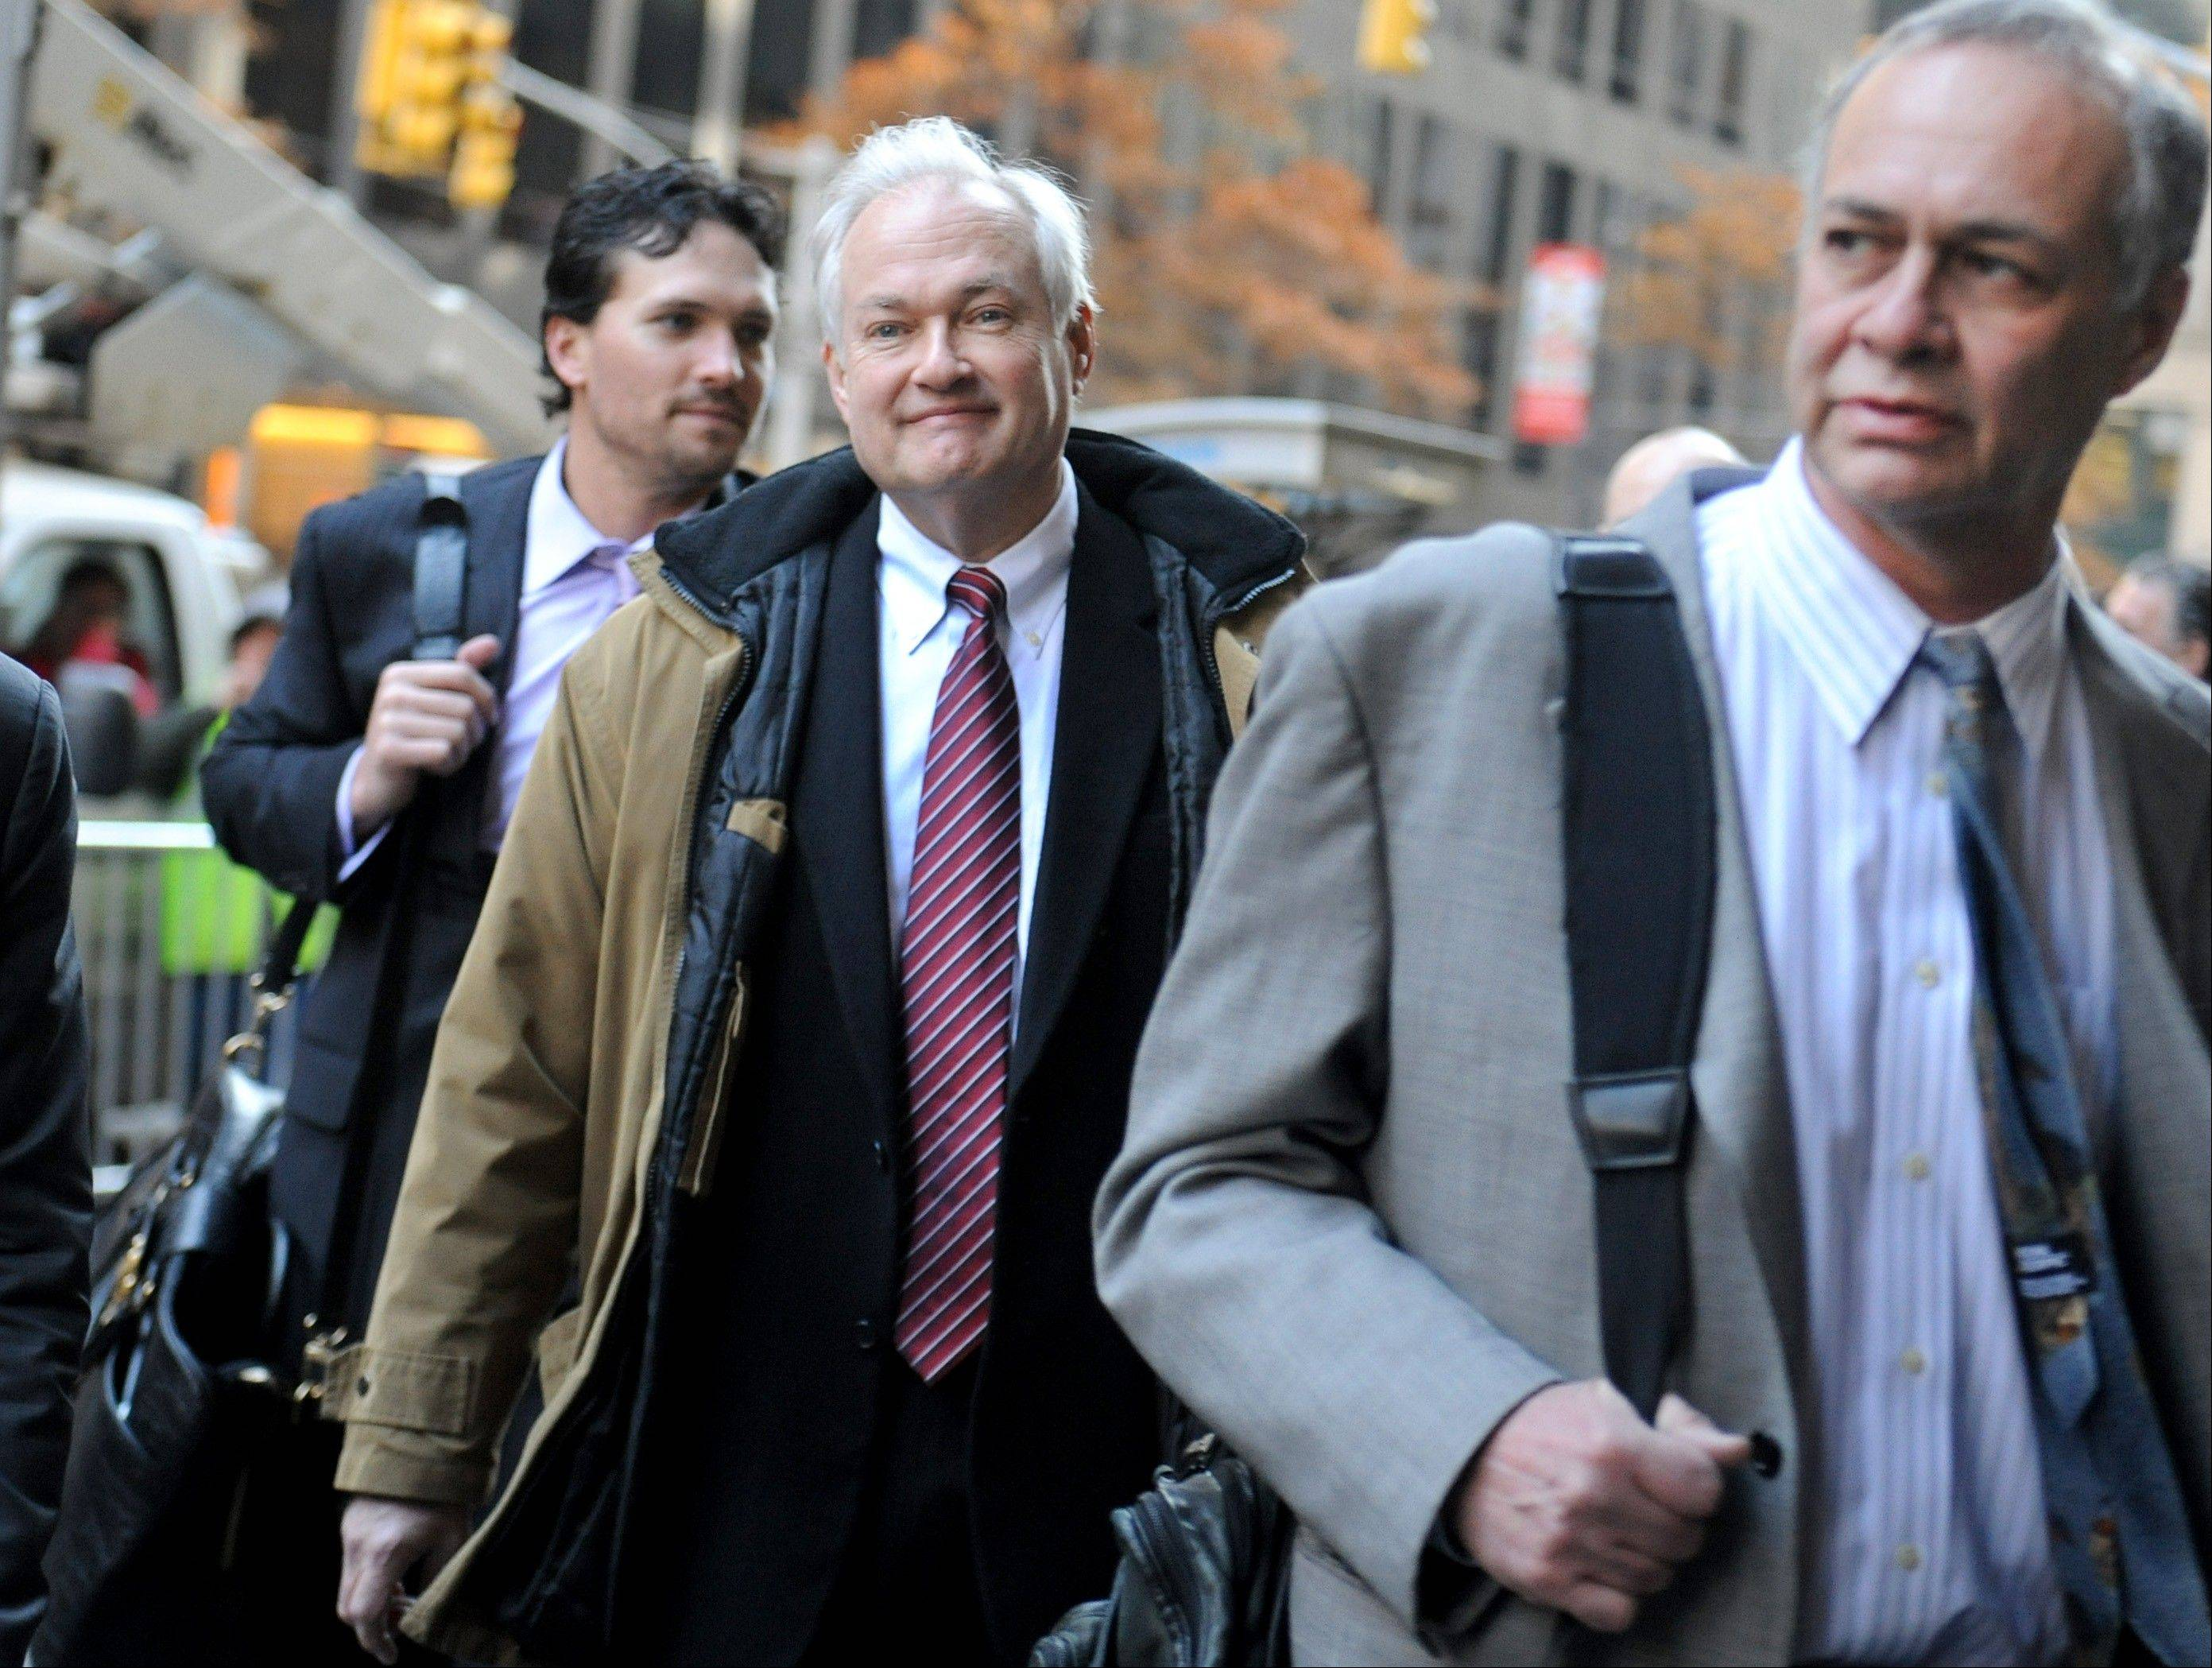 NHL Players' Association executive director Donald Fehr, center, arrives Wednesday for labor talks at NHL headquarters in New York with his brother, NHLPA counsel Steven Fehr.